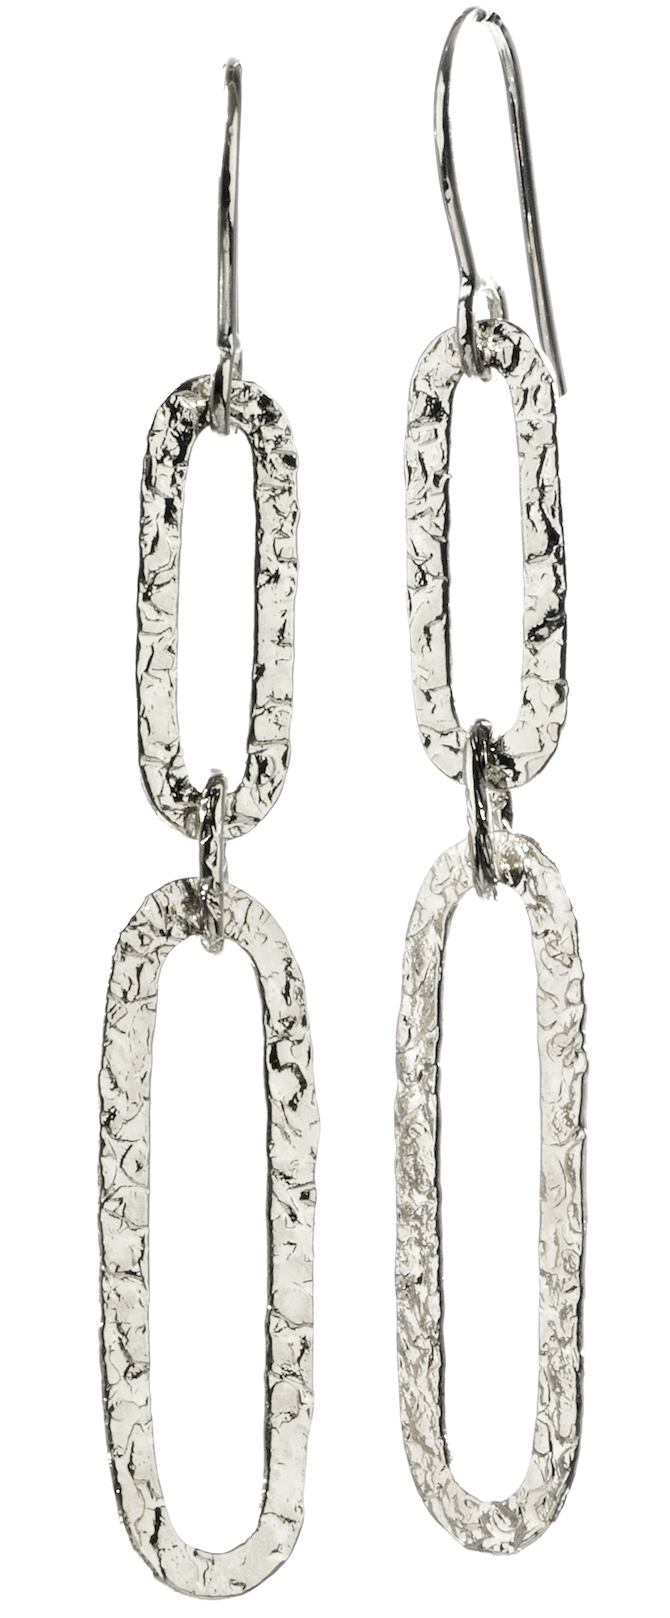 Nina Nguyen Starlight silver earrings